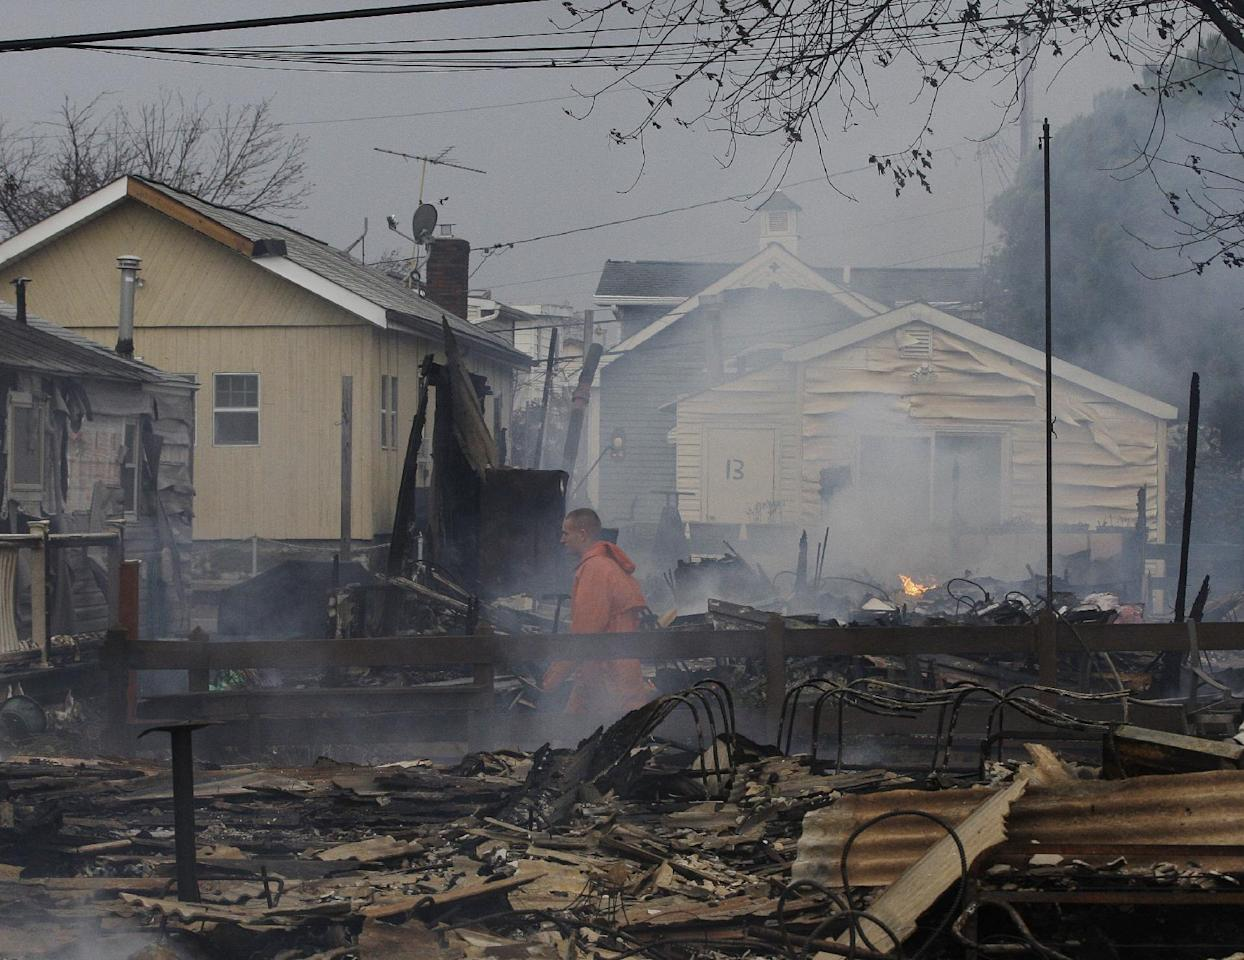 Keith Klein walks through homes damaged by a fire at Breezy Point in the New York City borough of Queens. Tuesday, Oct. 30, 2012. The fire destroyed between 80 and 100 houses Monday night in an area flooded by the superstorm that began sweeping through earlier. (AP Photo/Frank Franklin II)